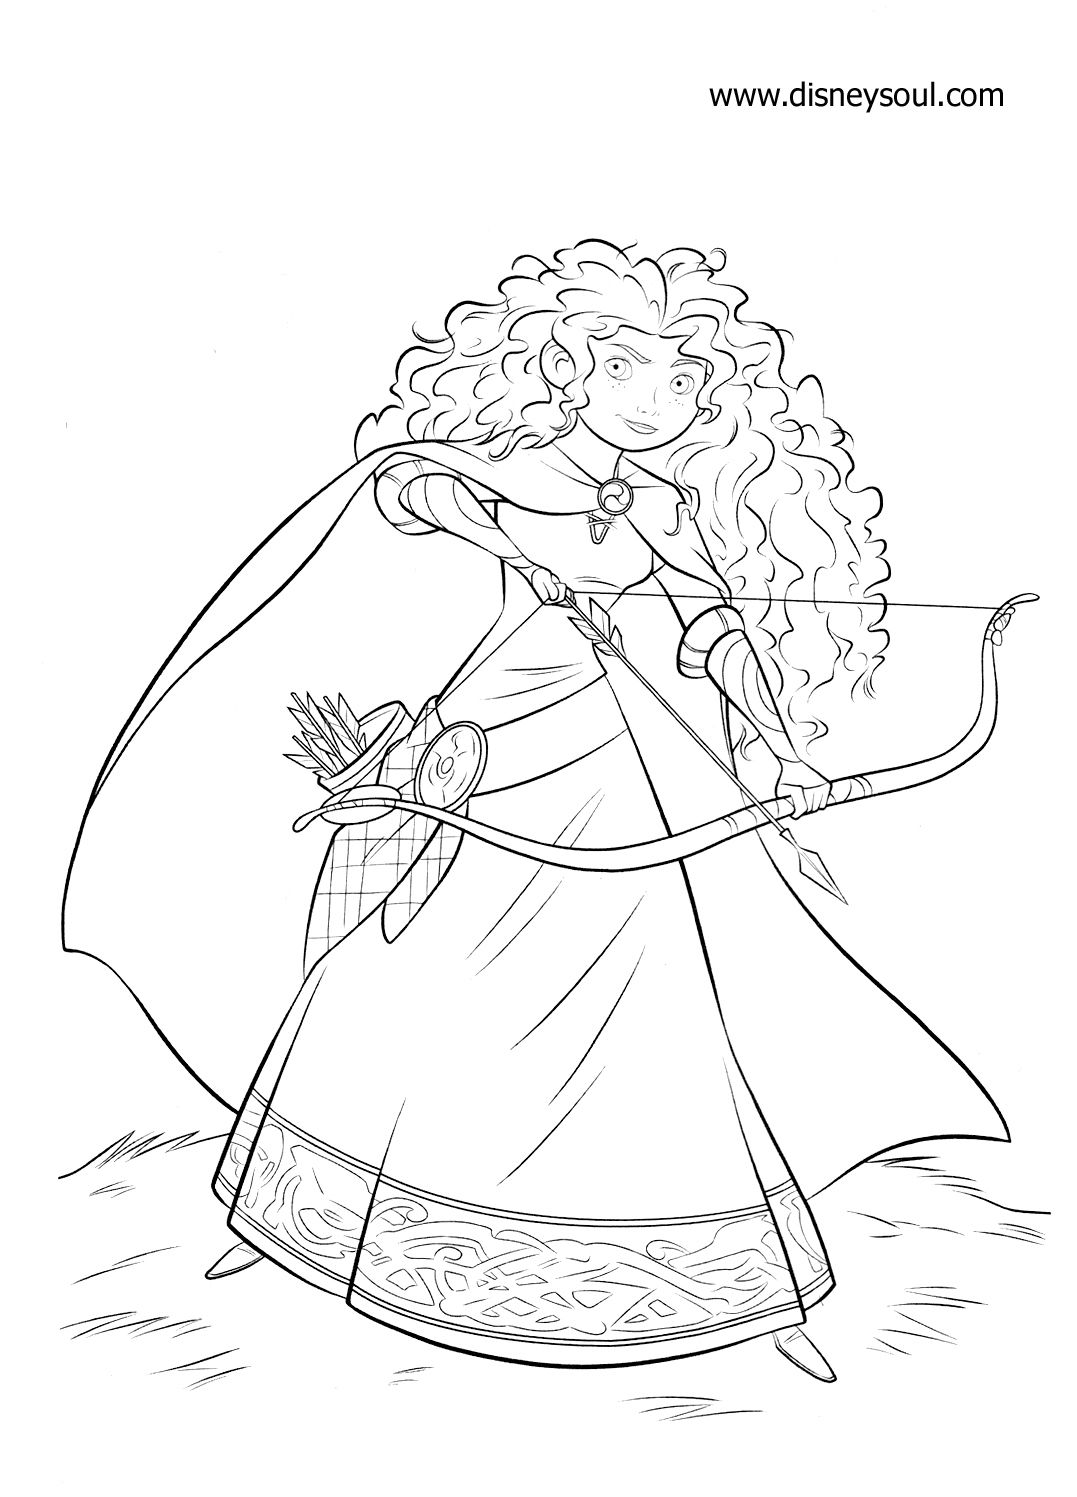 the little prince coloring pages - photo#15